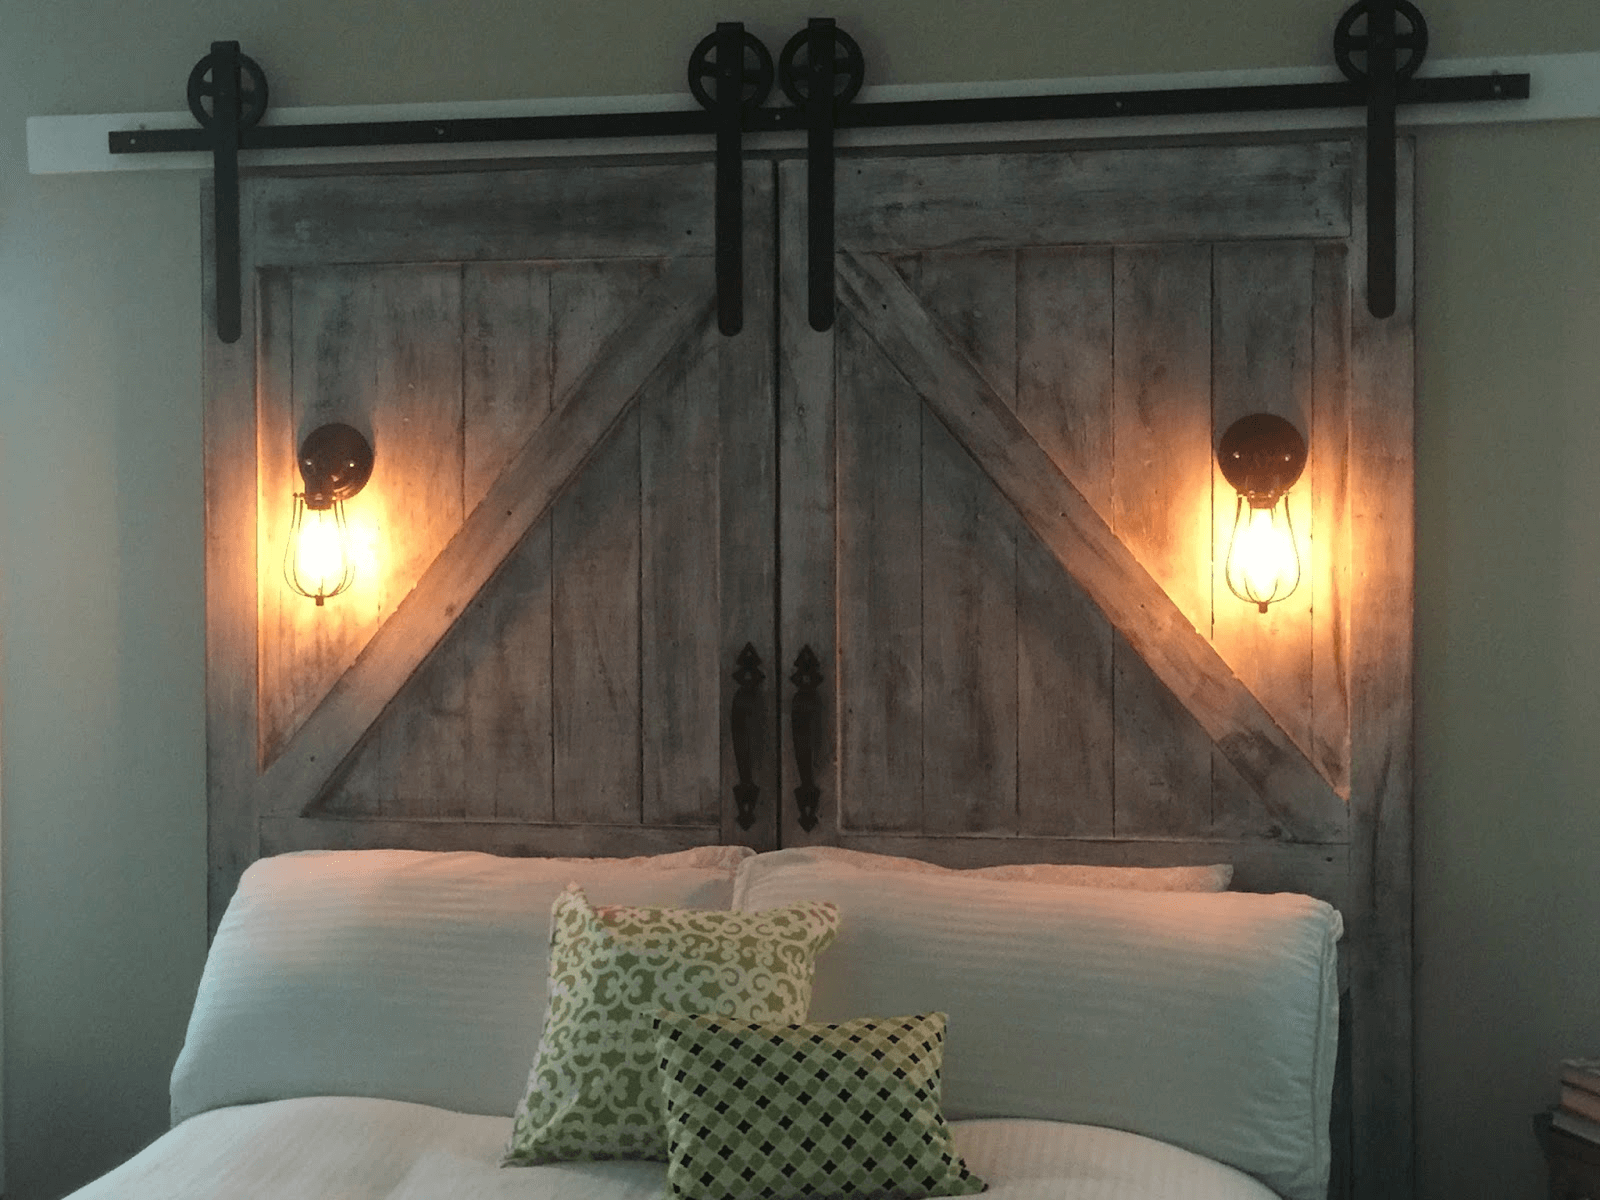 Creative door headboard ideas diy for wooden rustic bedroom decoration